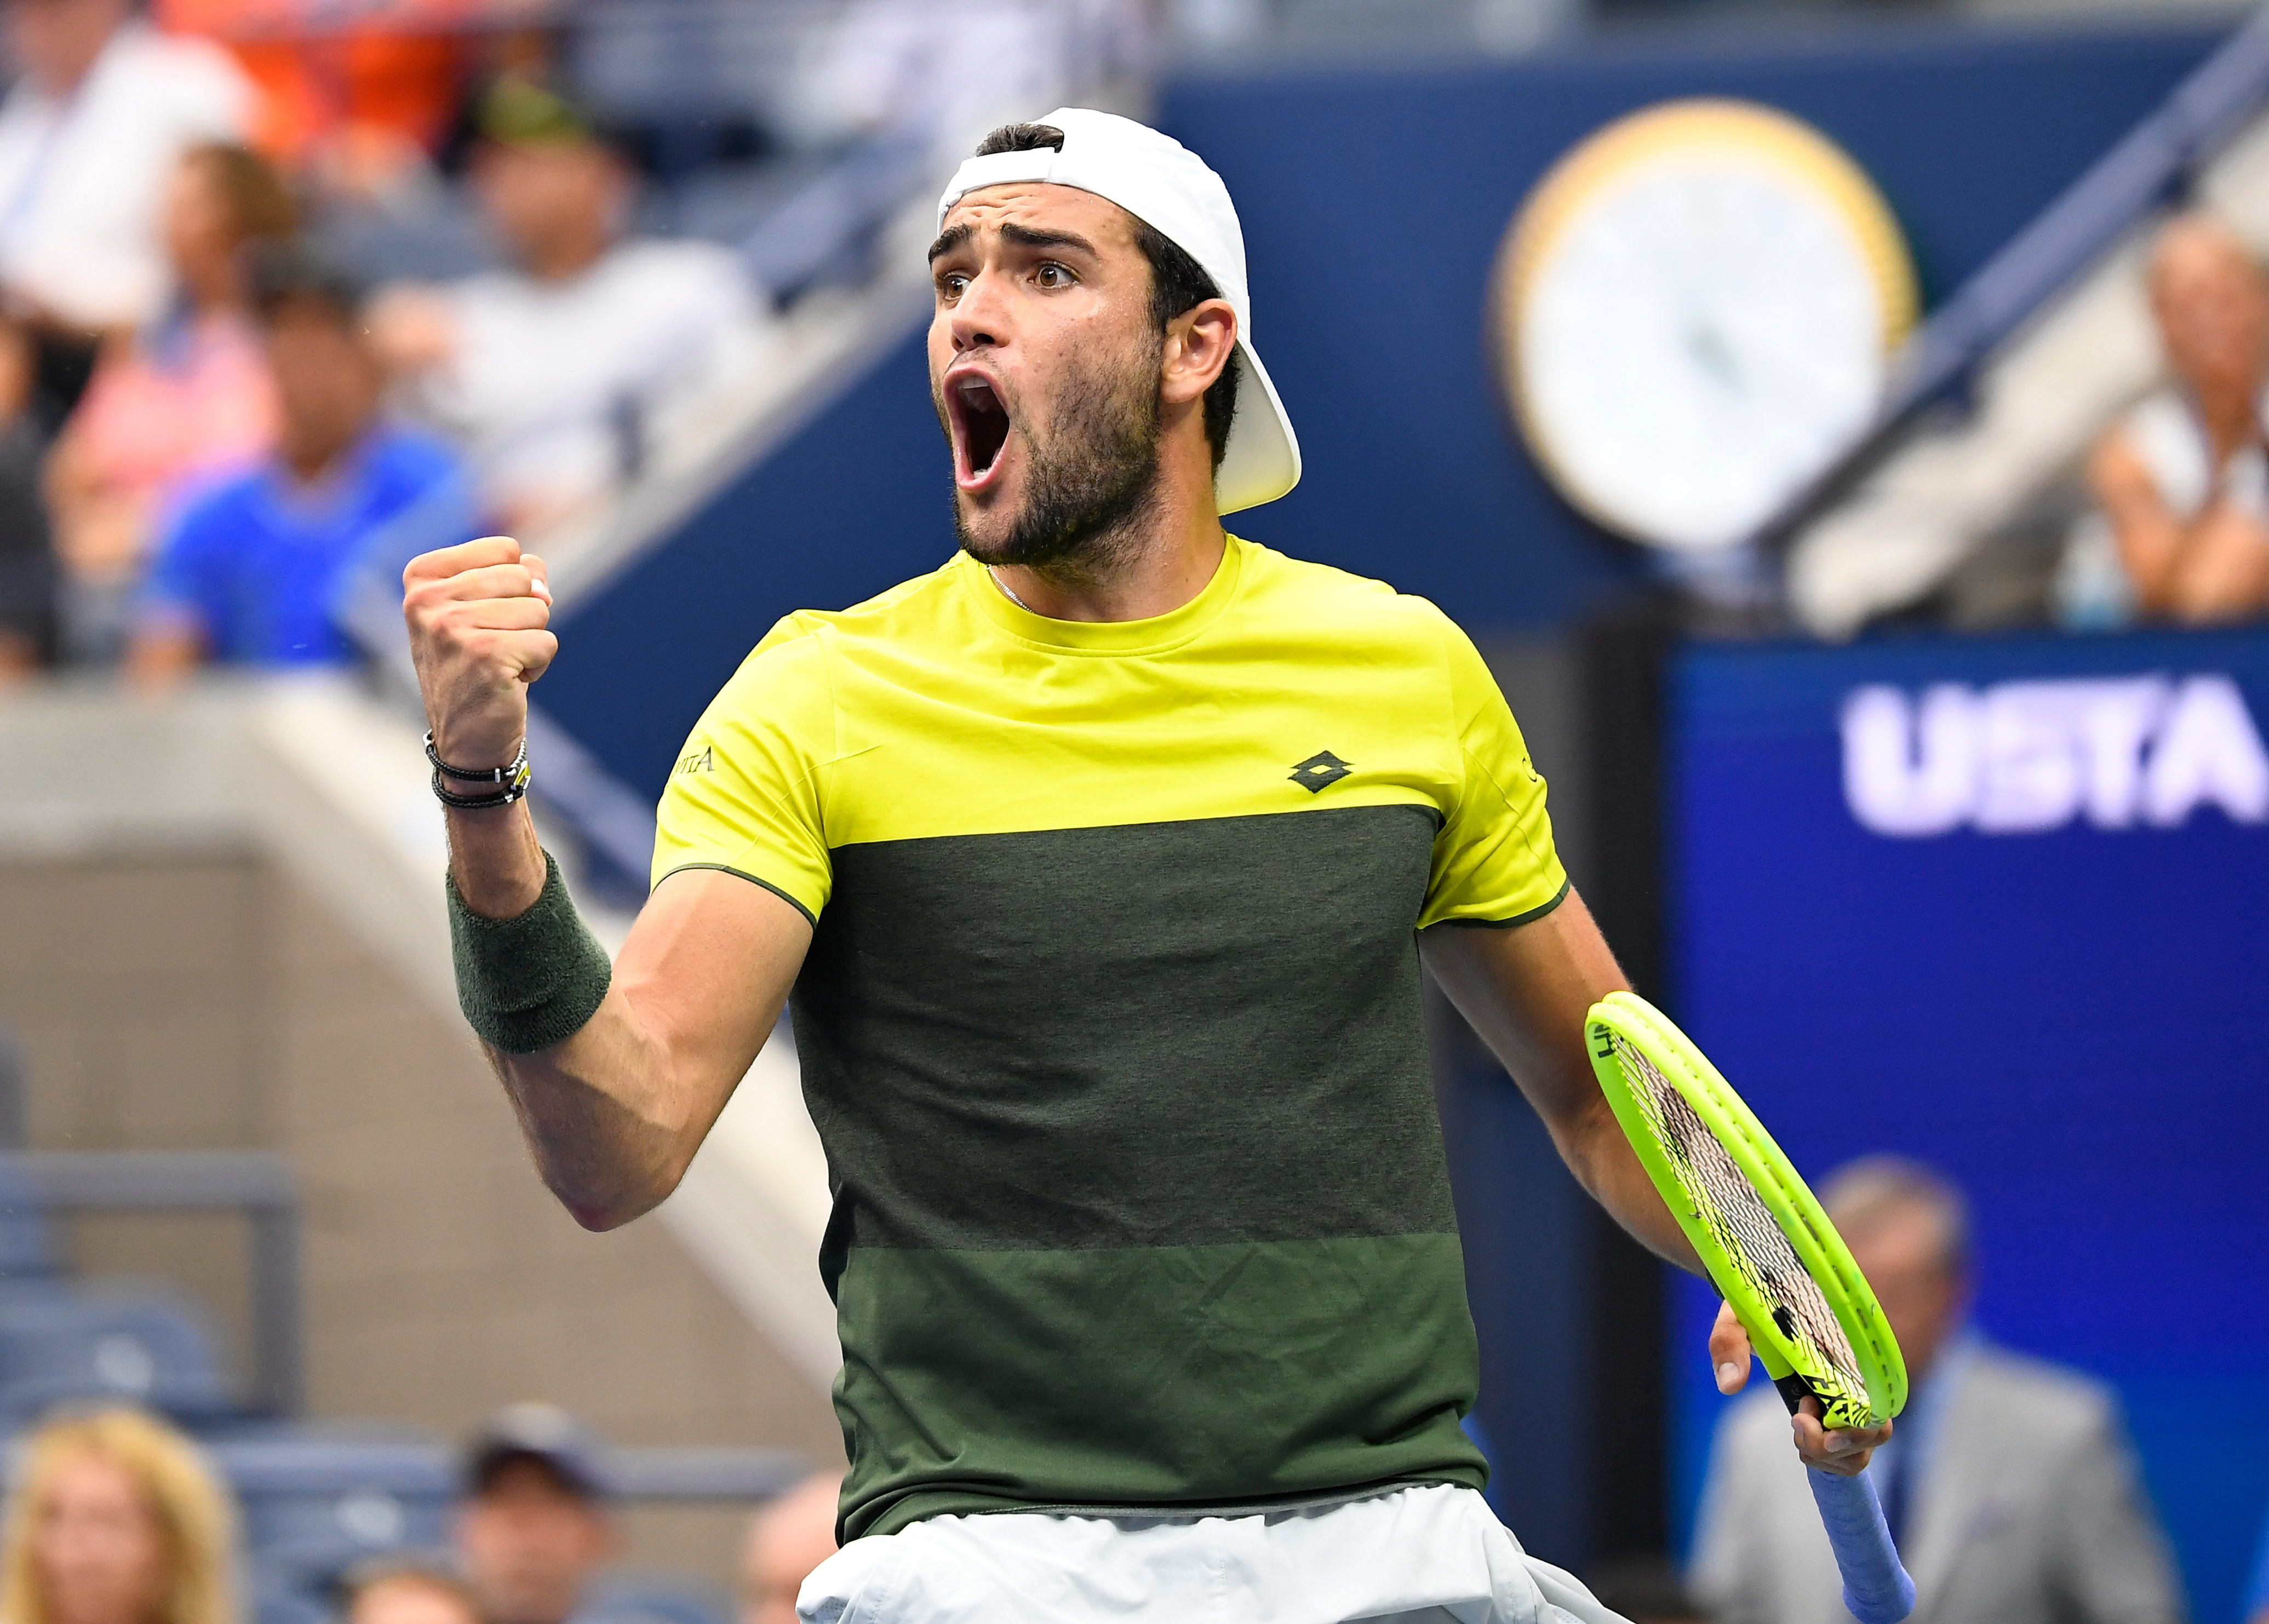 Eight best first round matches at the 2021 Australian Open